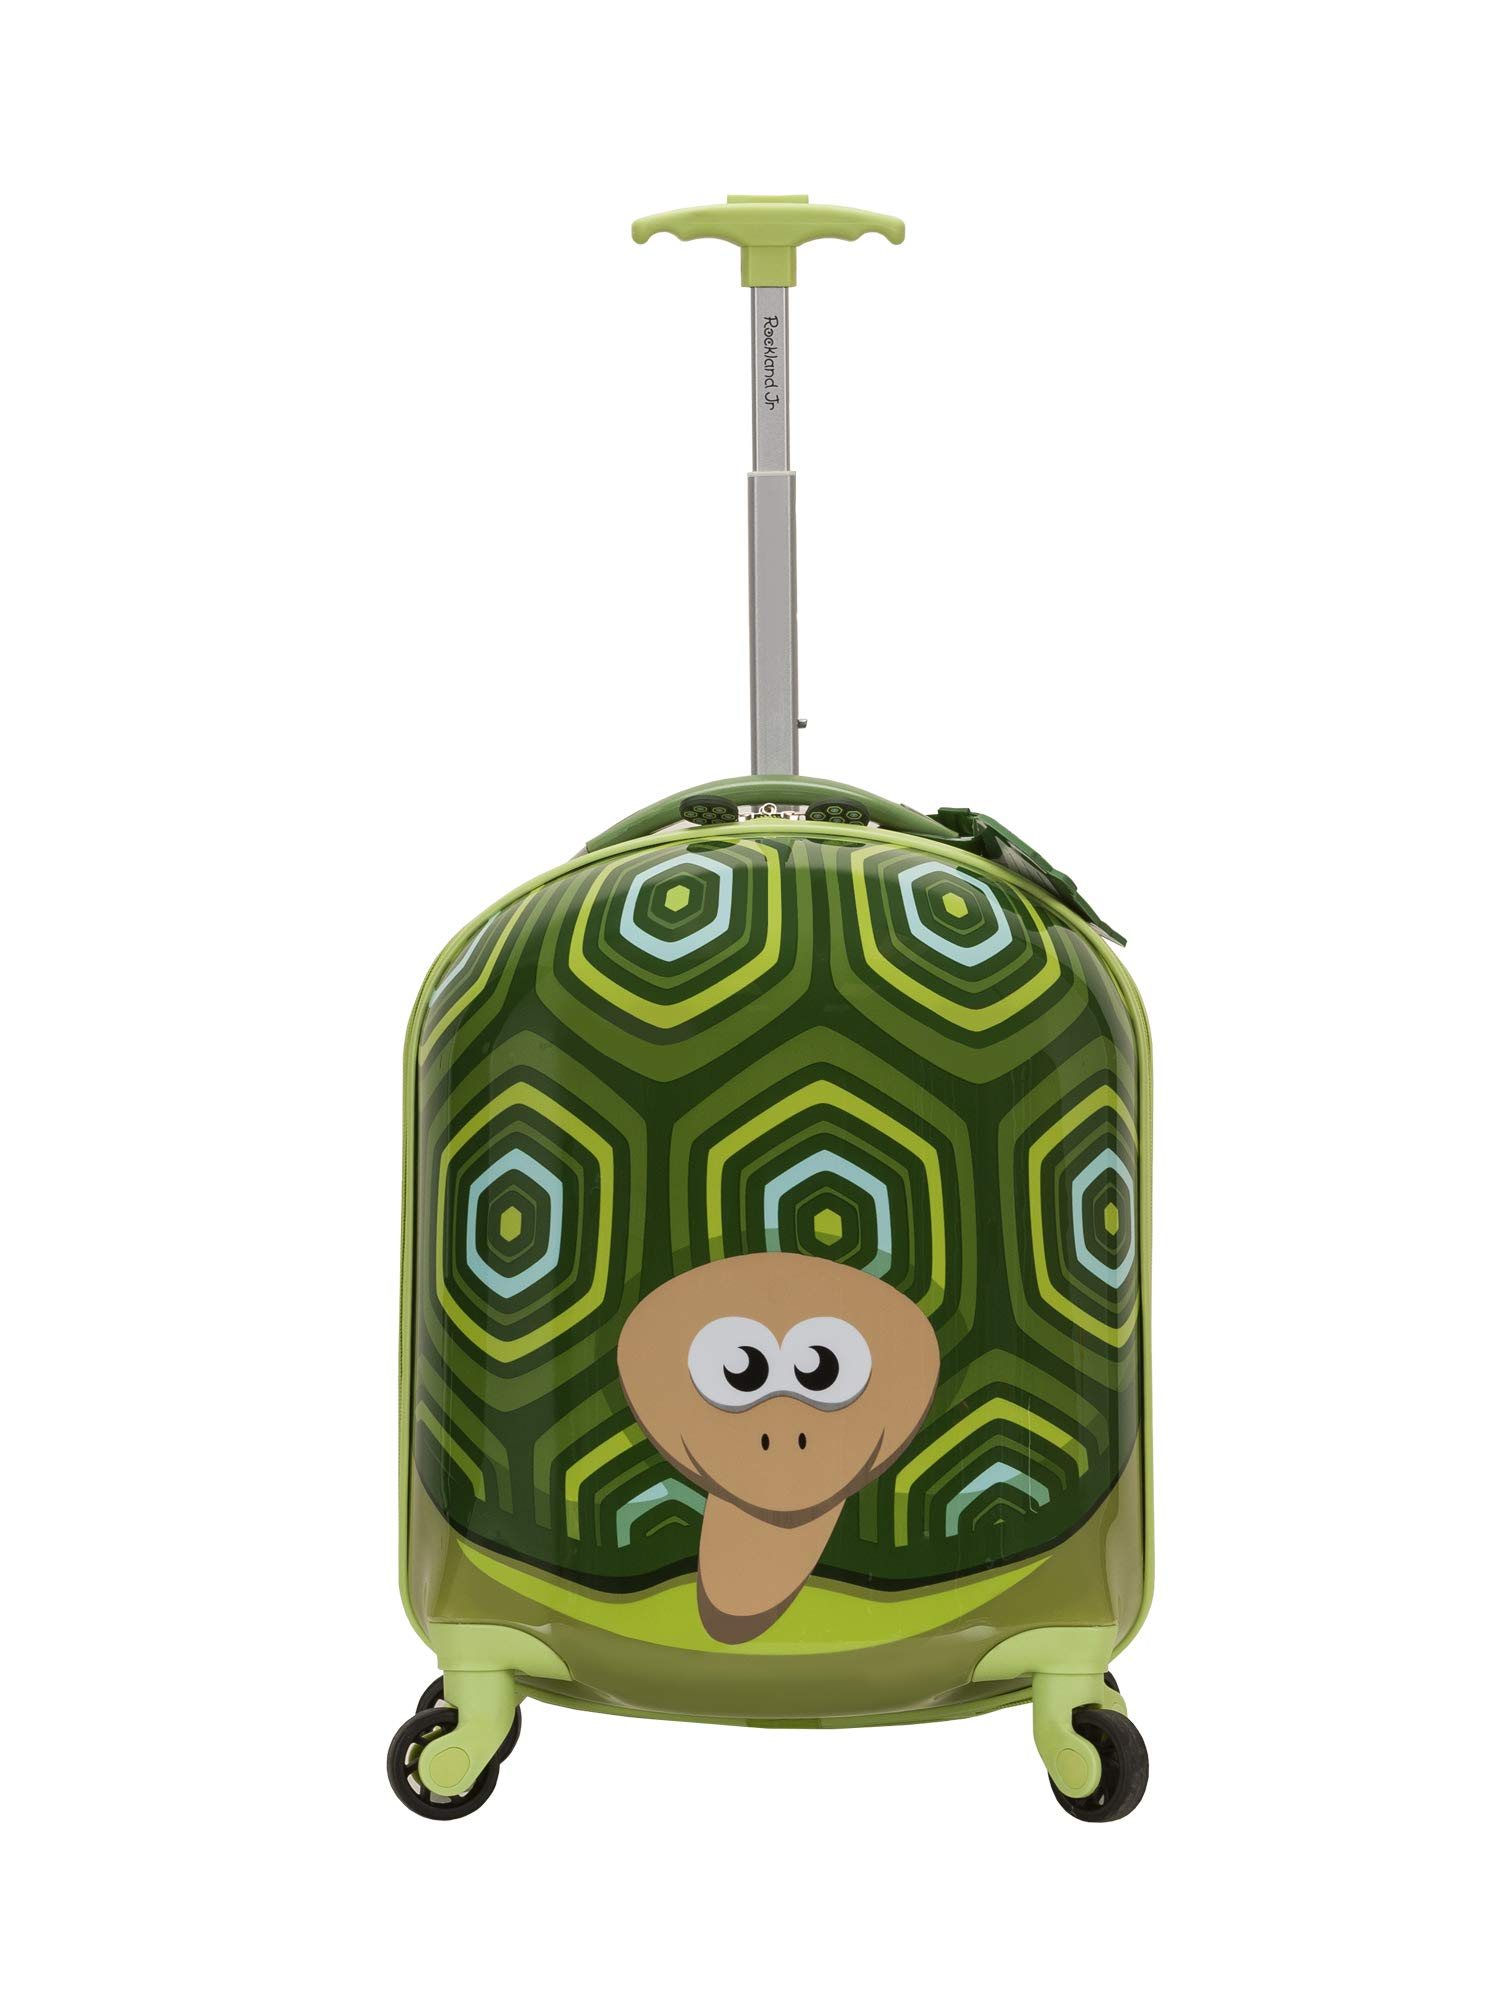 Rockland Jr. Kids' My First Luggage-Polycarbonate Hard Side Spinner, TURTLE